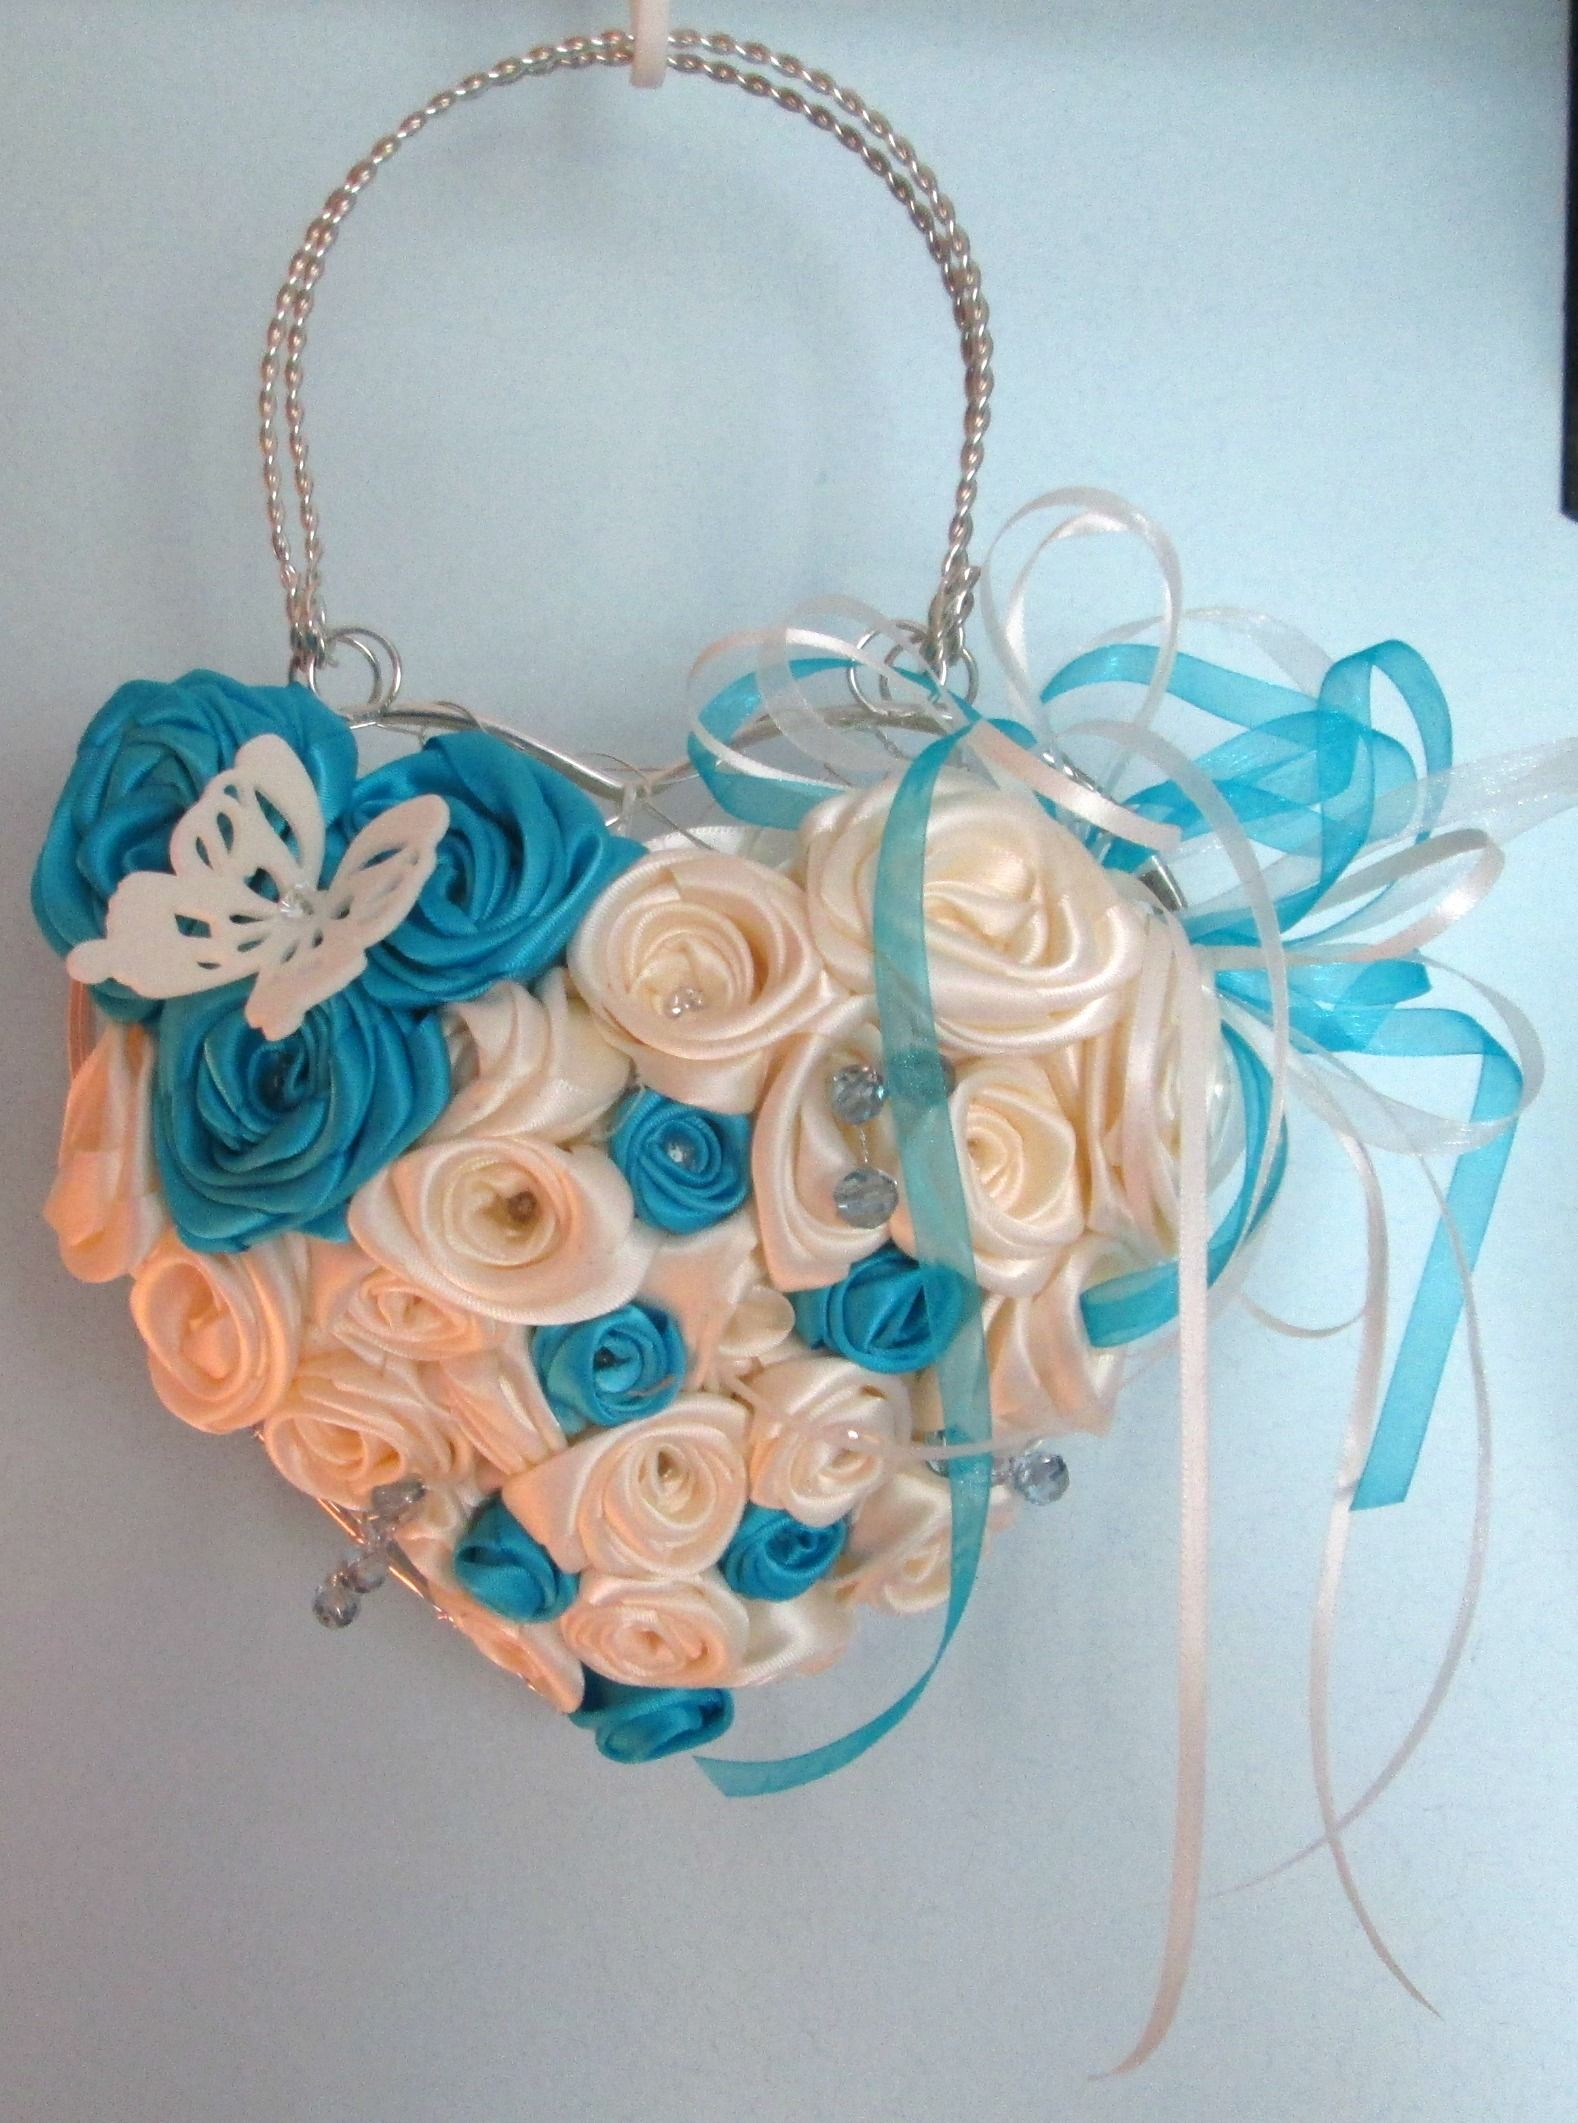 Handmade ivory and turquoise silk roses, presented in silver wire ...